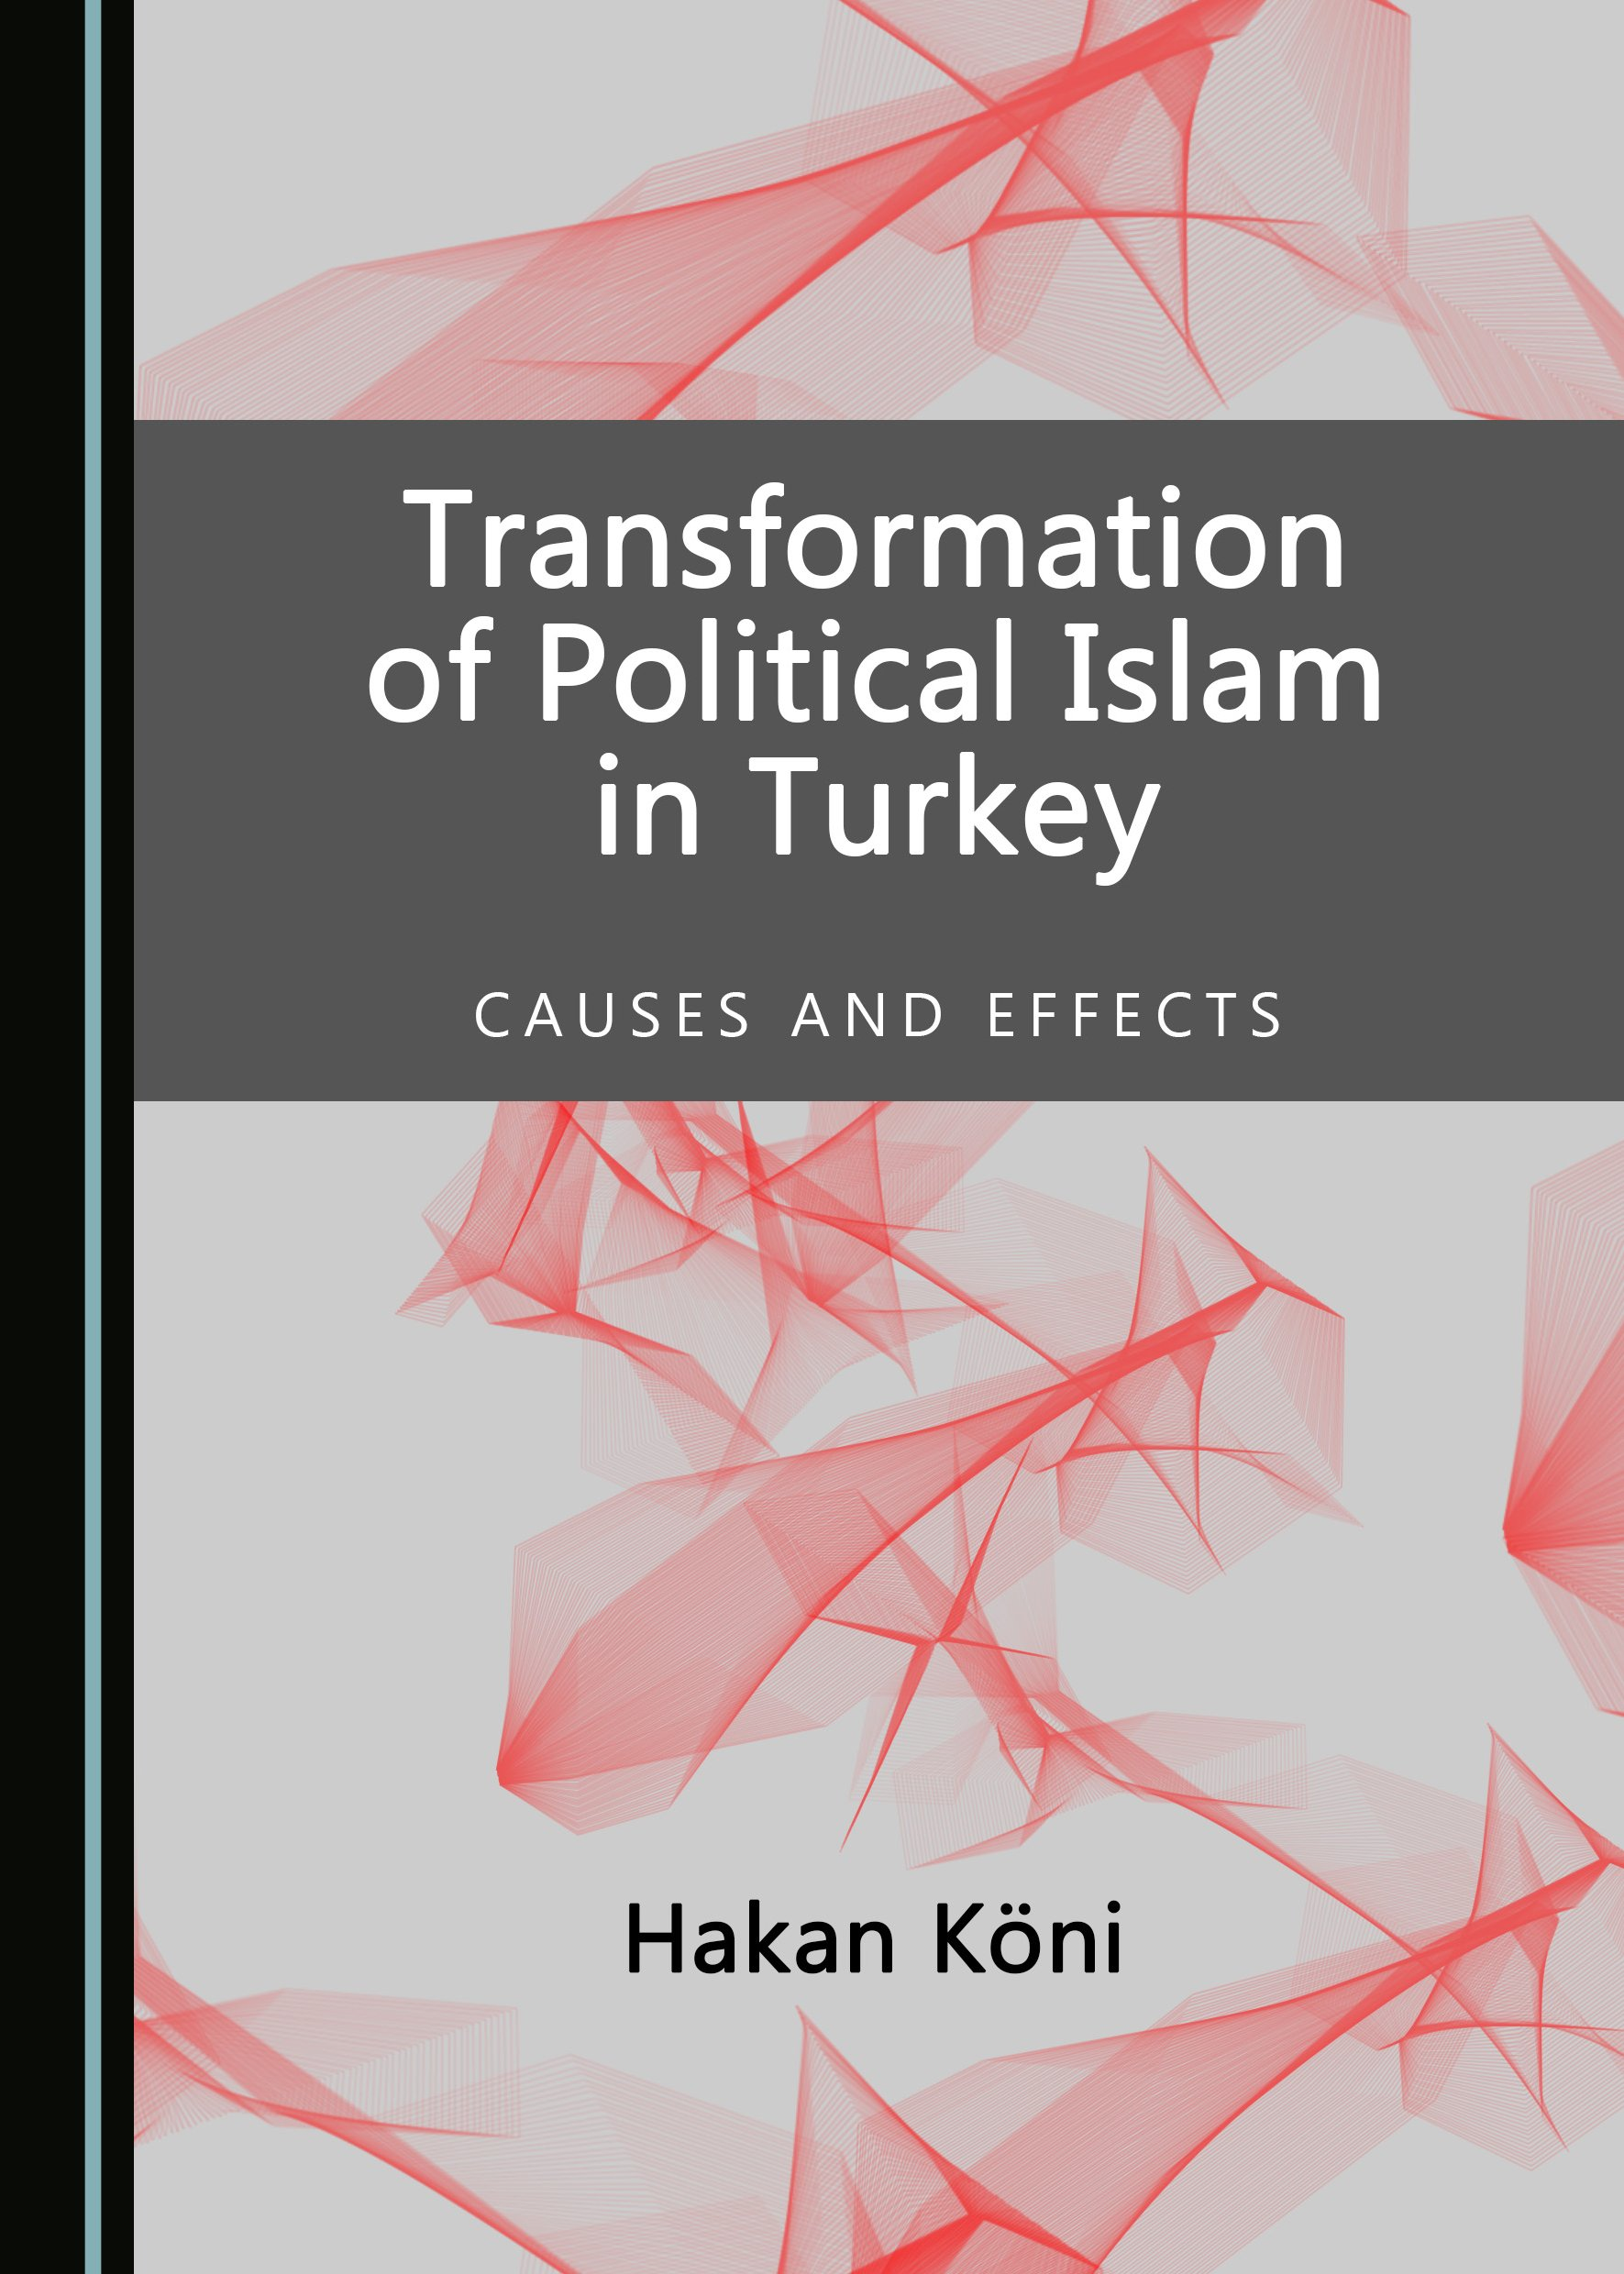 Transformation of Political Islam in Turkey: Causes and Effects